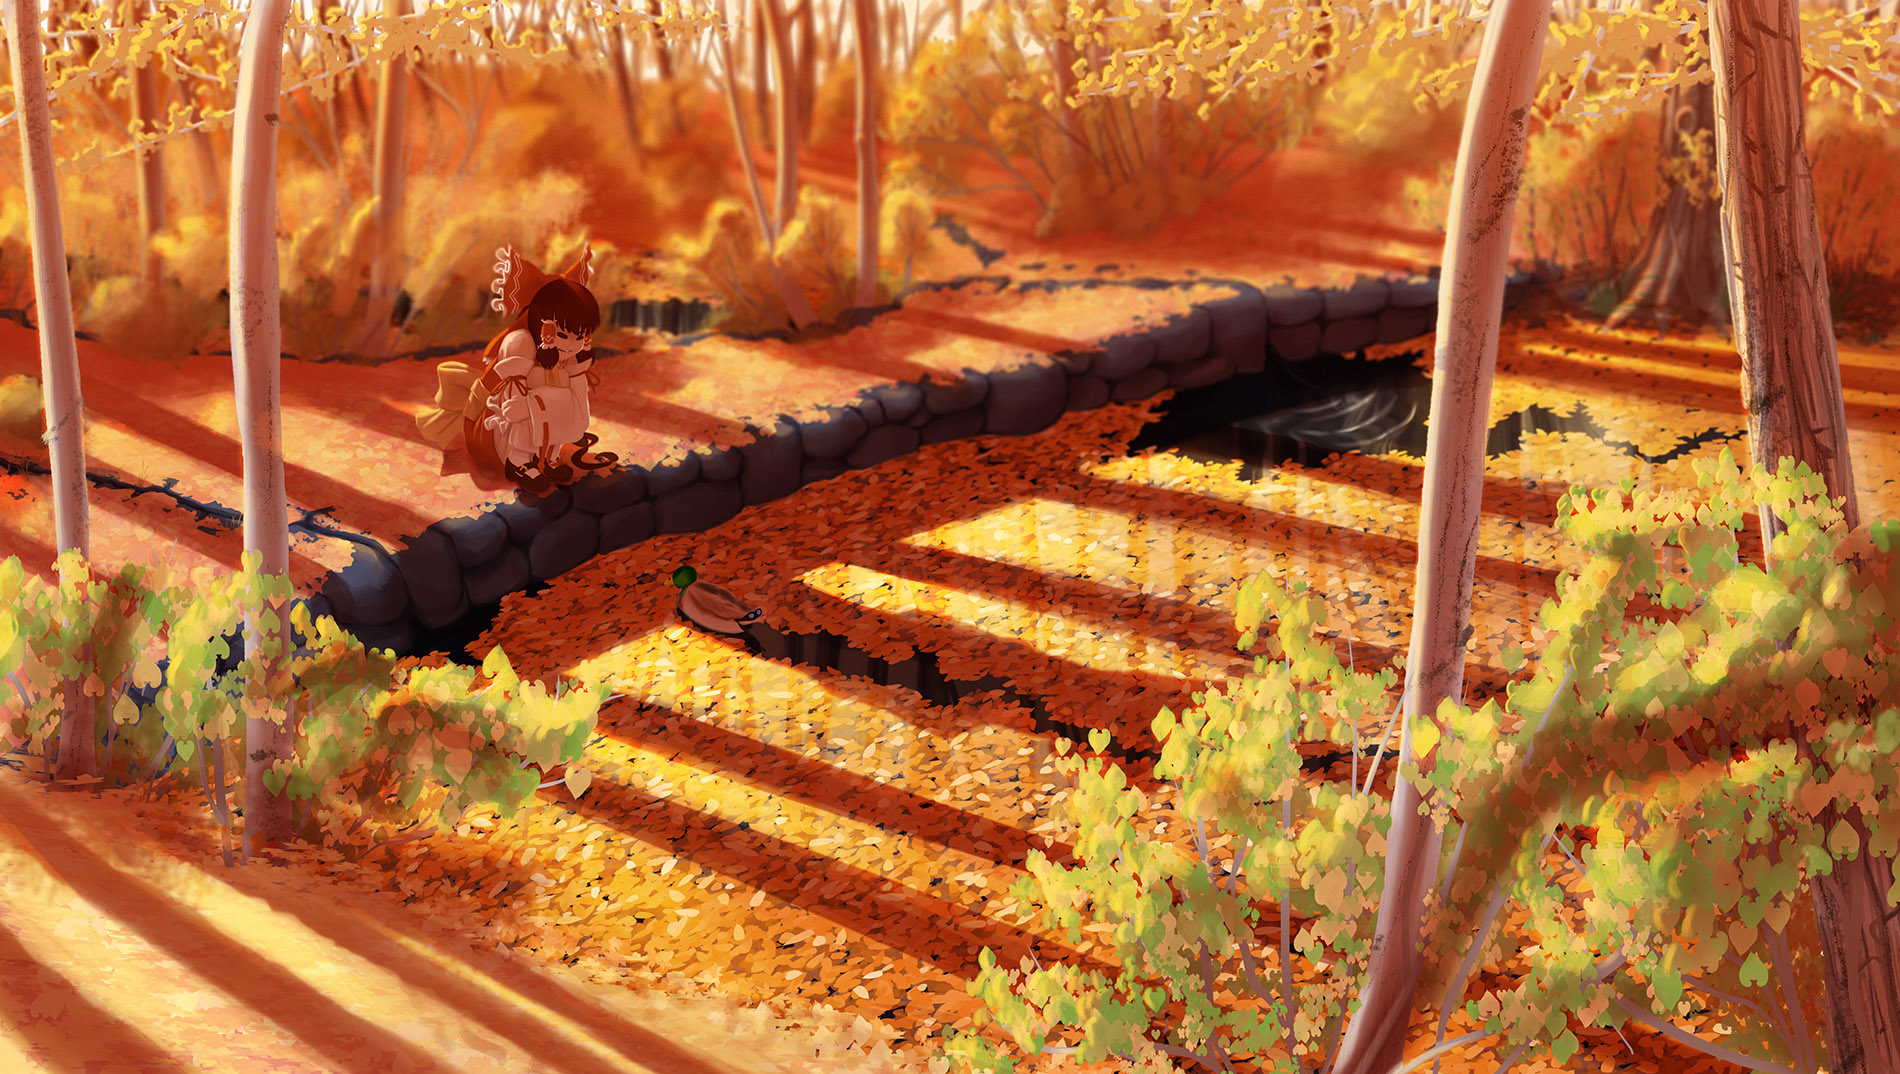 435_gold_autumn.jpg